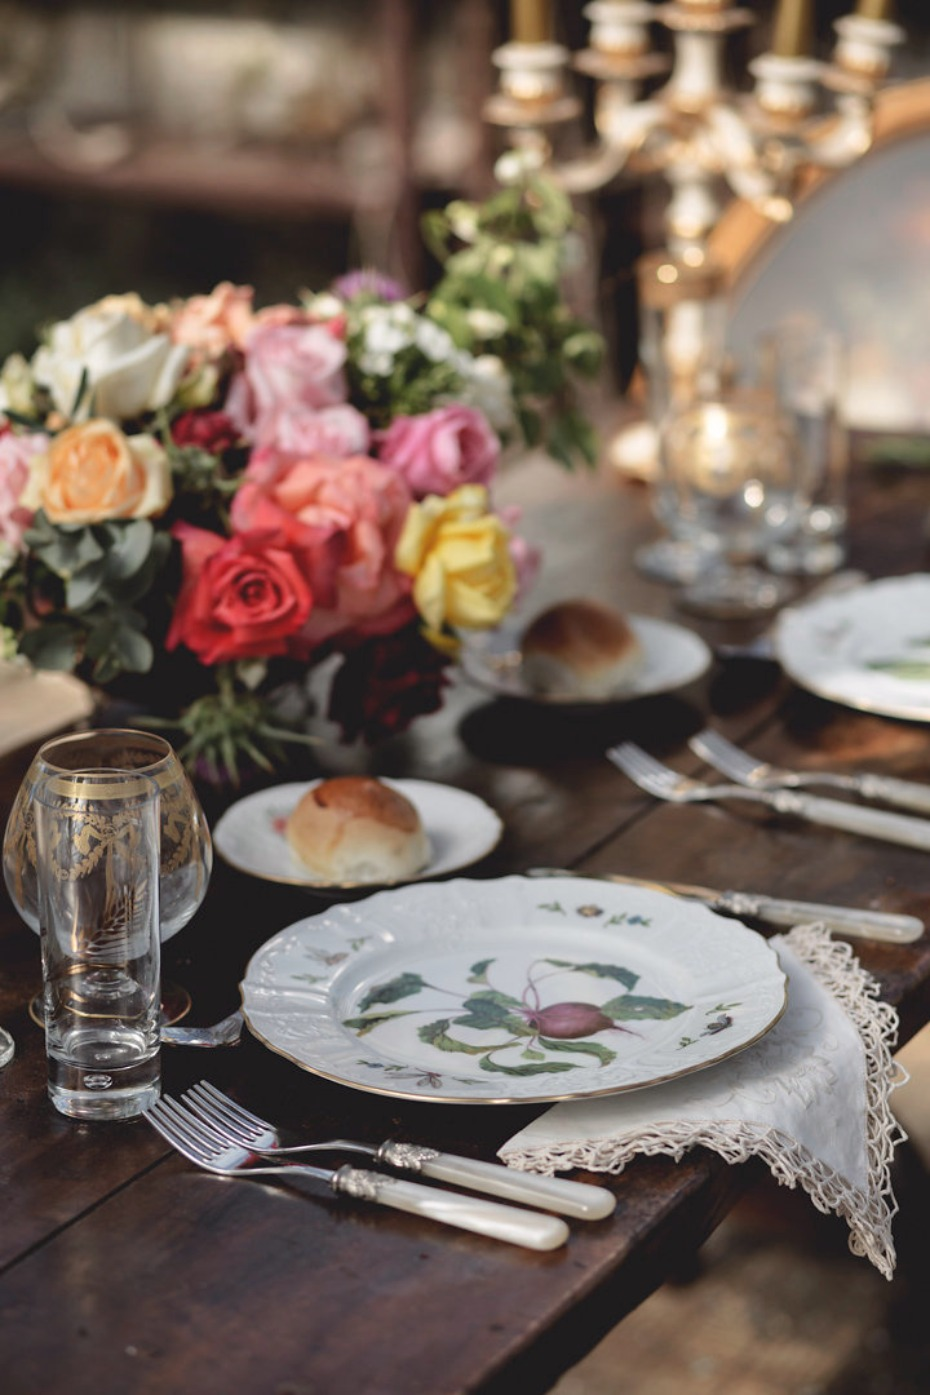 Vintage place settings